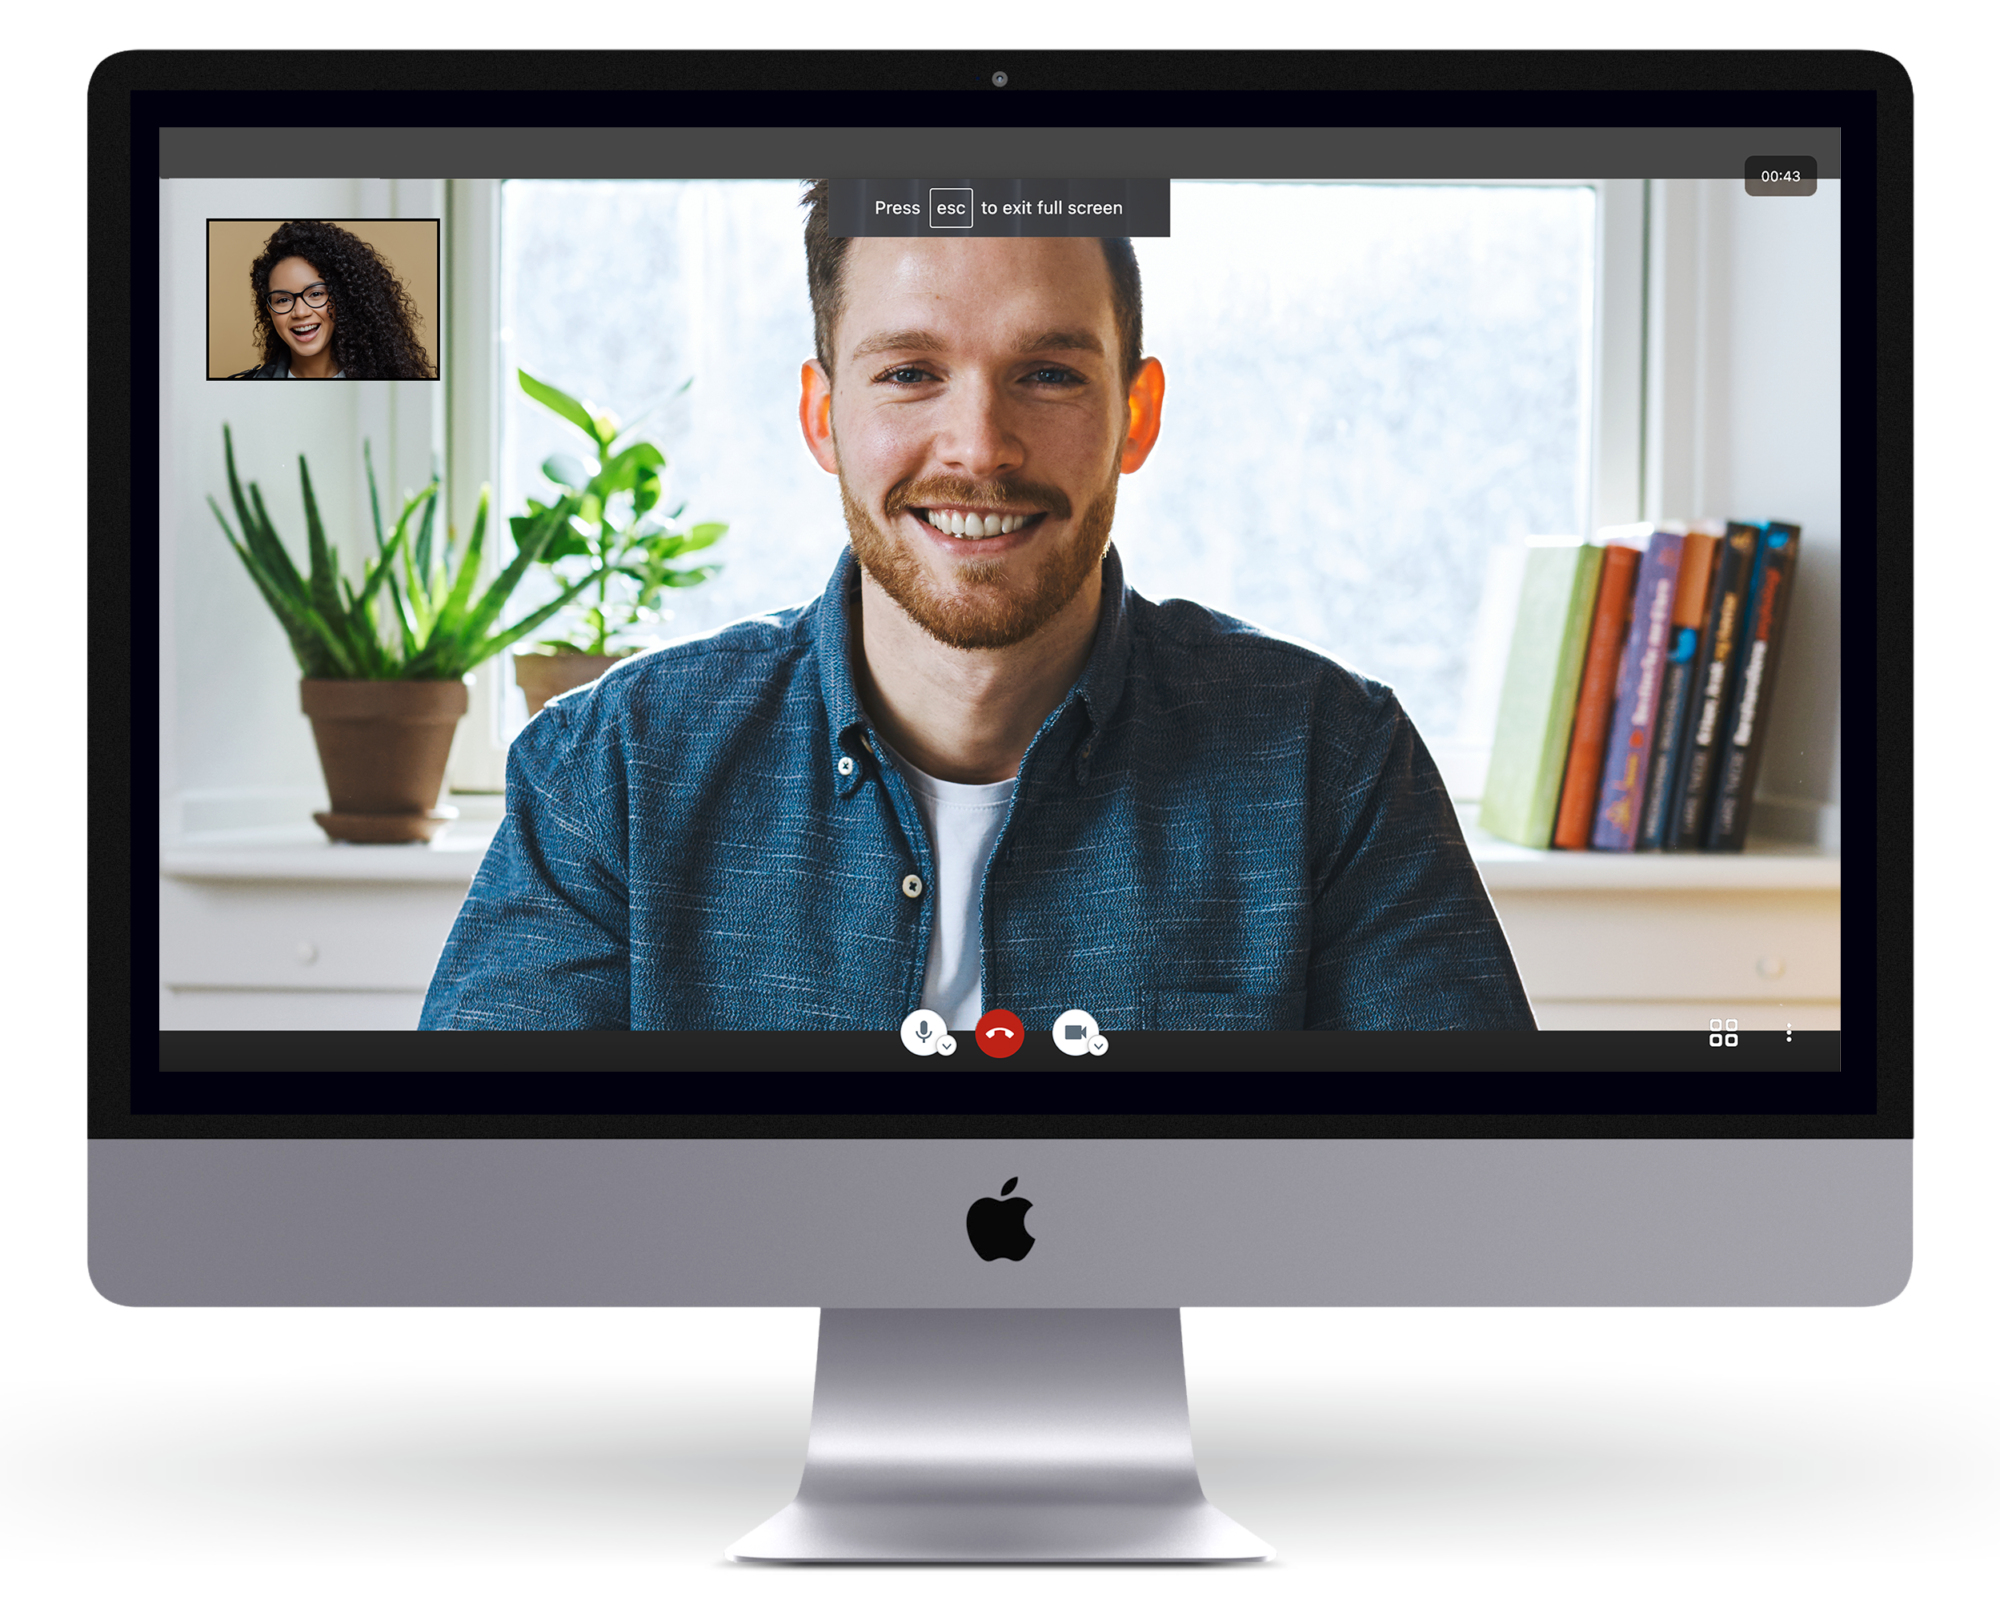 one touch video chat